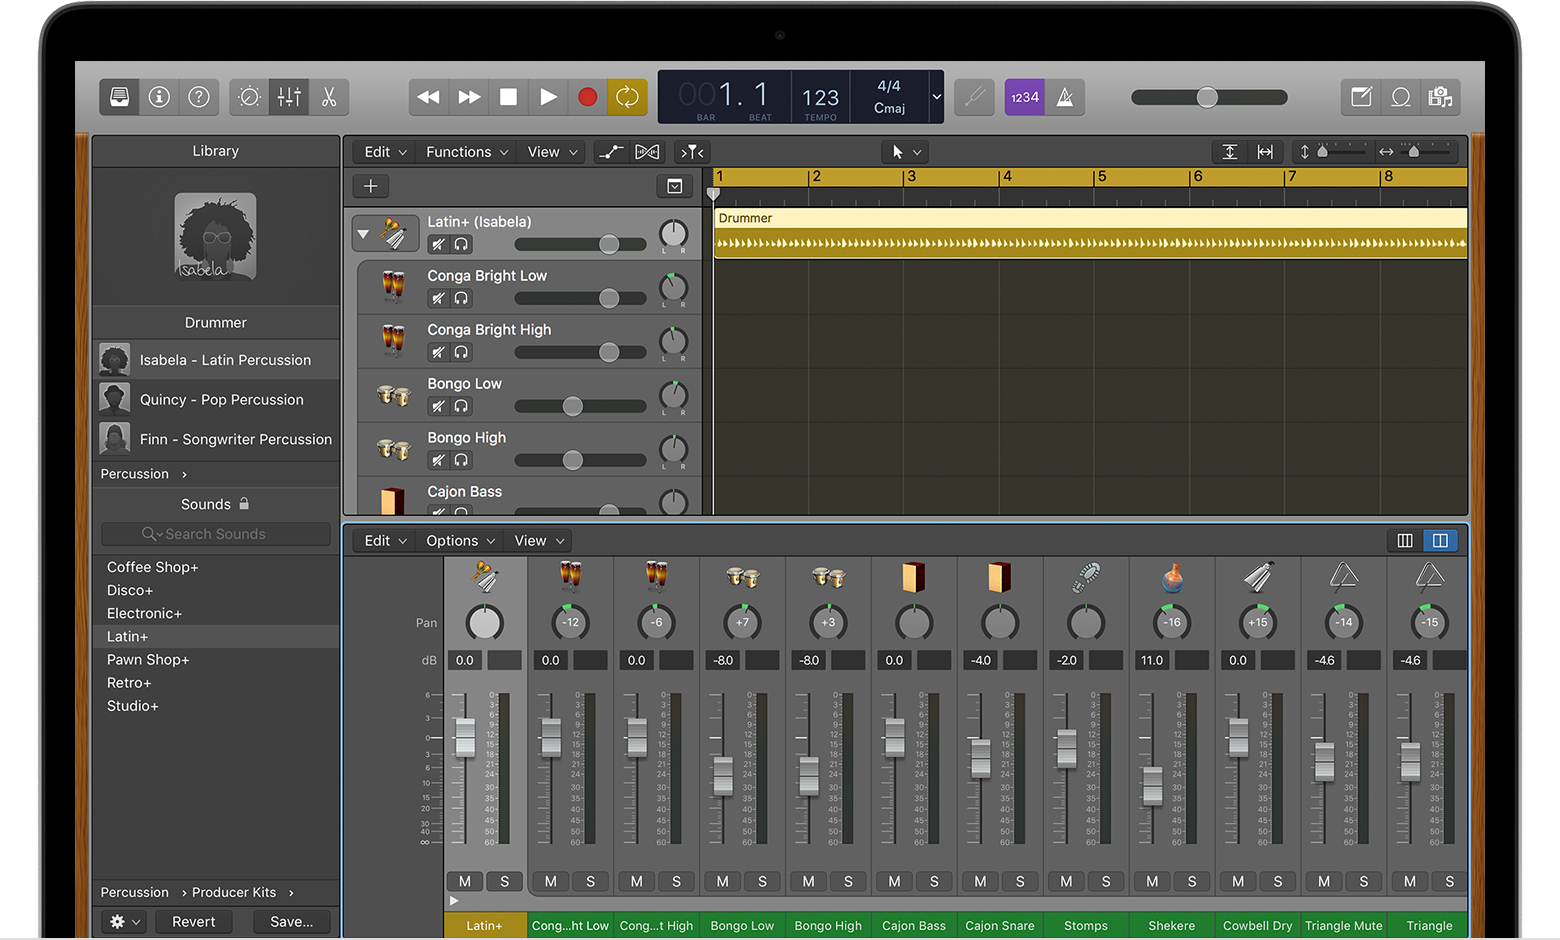 Work with percussionists in Logic Pro X - Apple Support